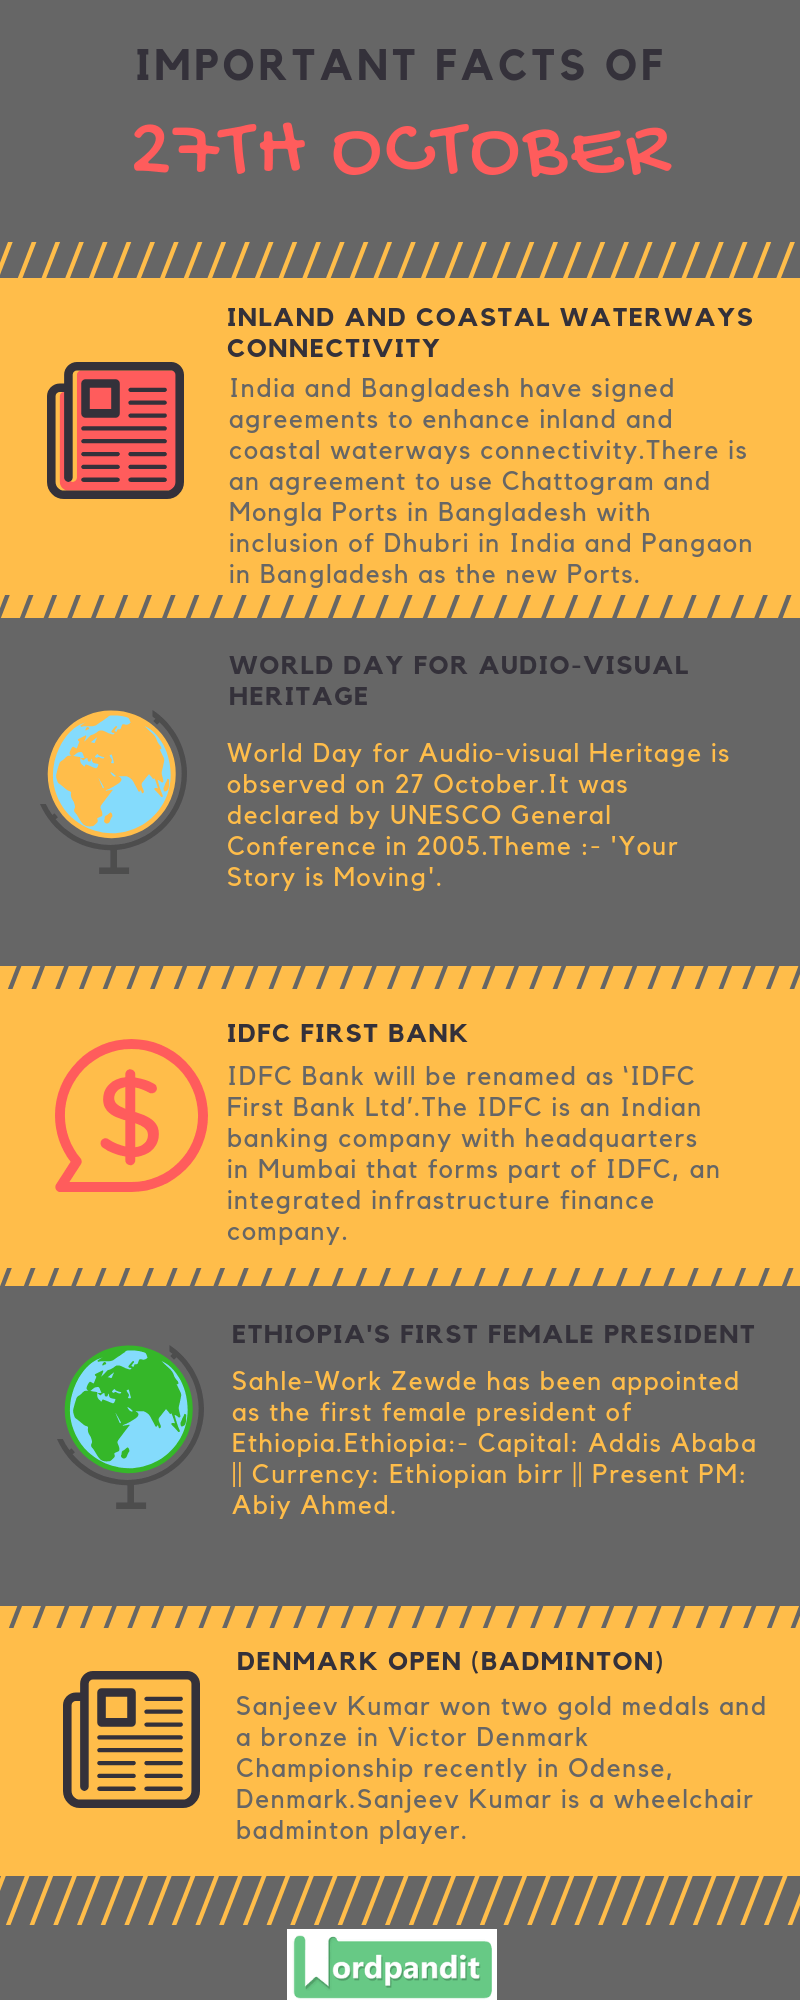 Daily Current Affairs 27 October 2018 Current Affairs Quiz 27 October 2018 Current Affairs Infographic